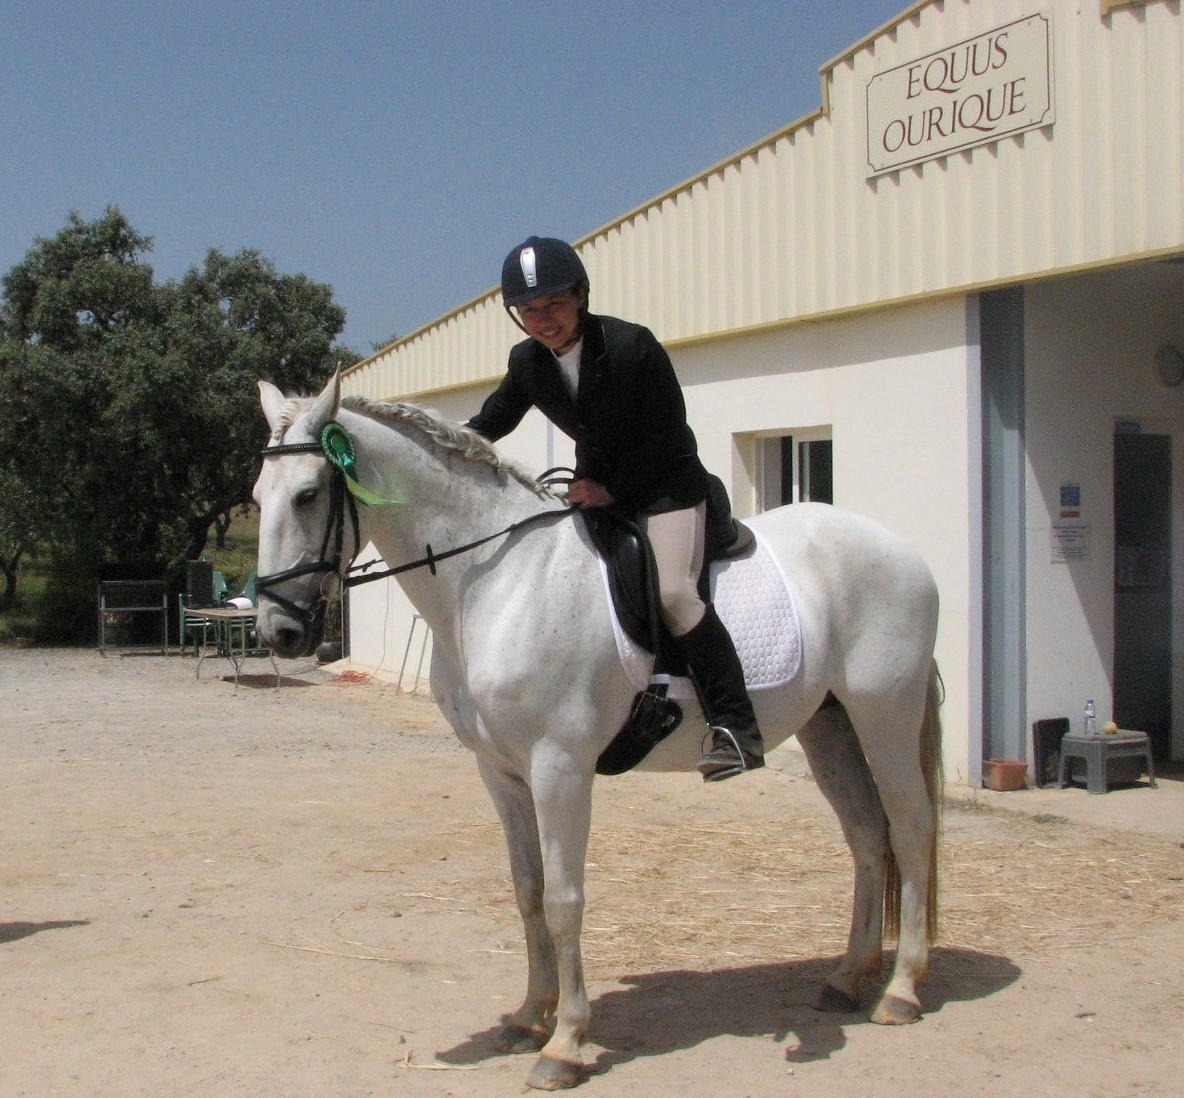 Dressage competition Ourique